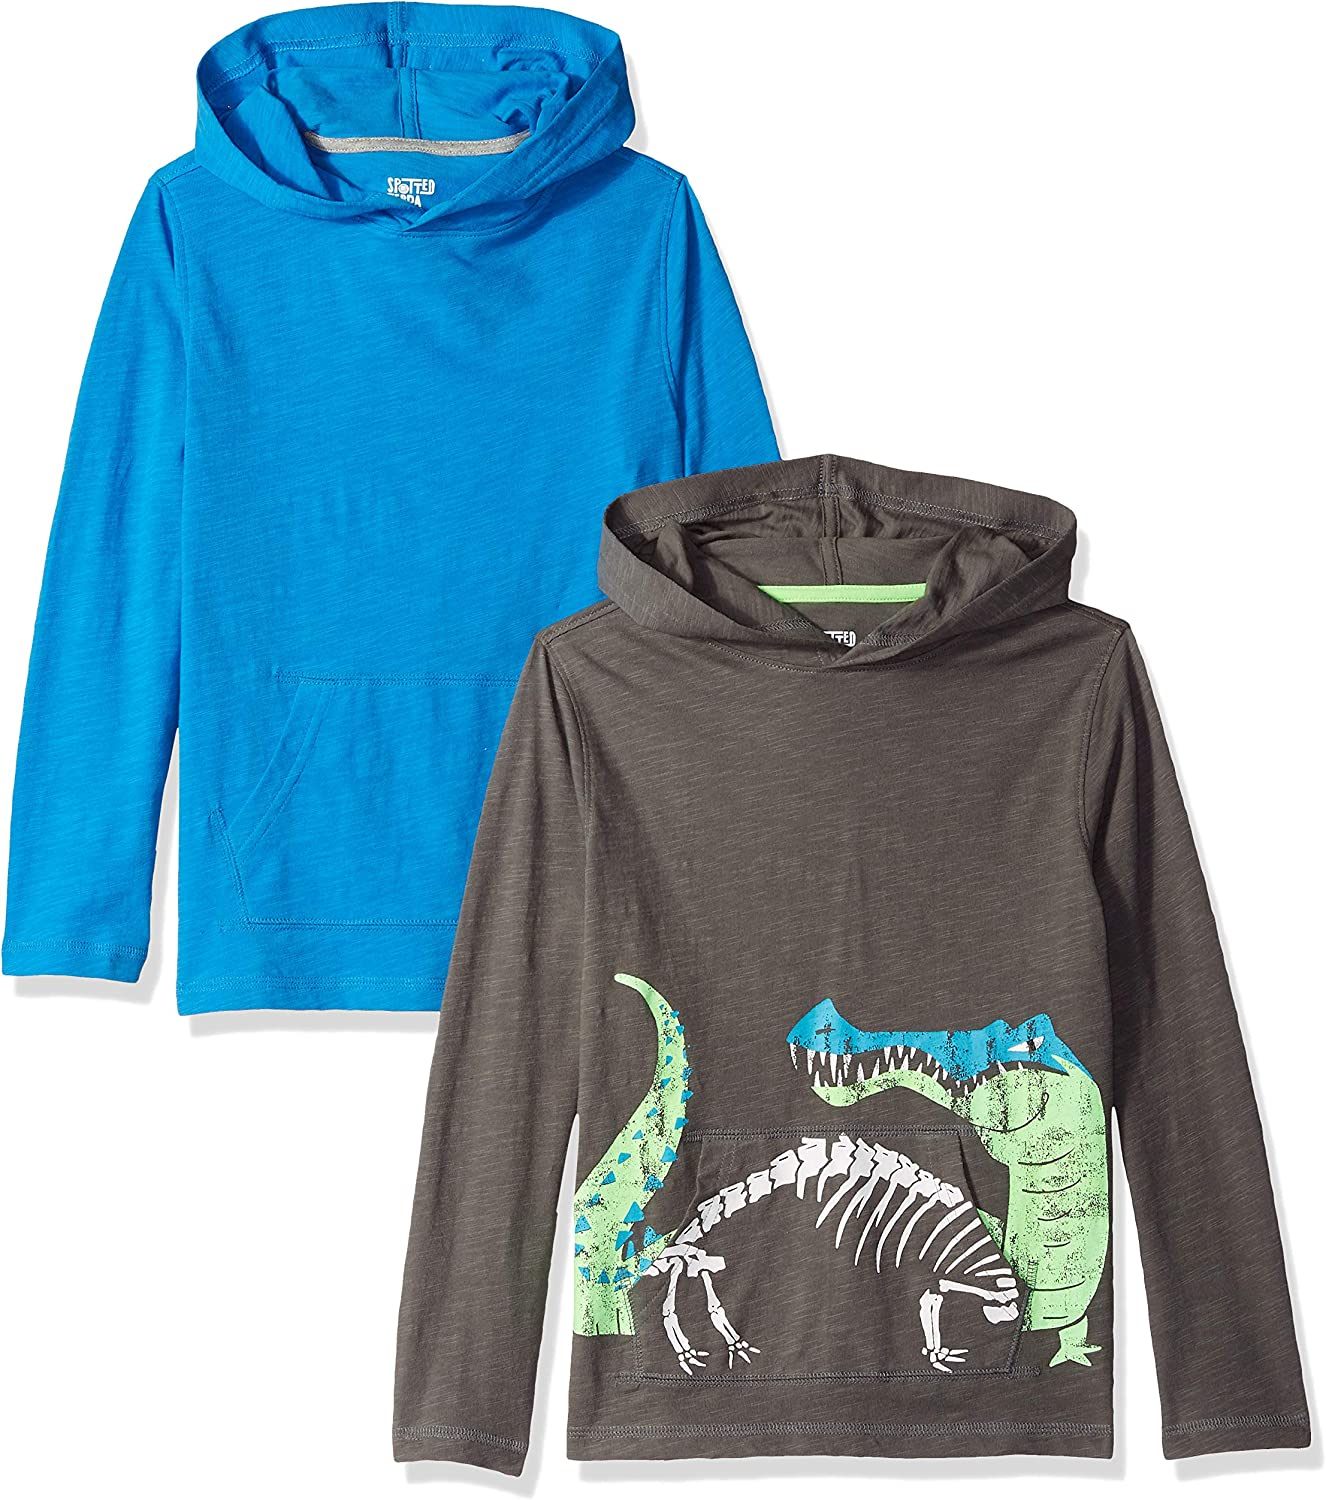 Marca Spotted Zebra Boys 2-pack Hooded Jersey Long Sleeve Tee fashion-t-shirts Ni/ños